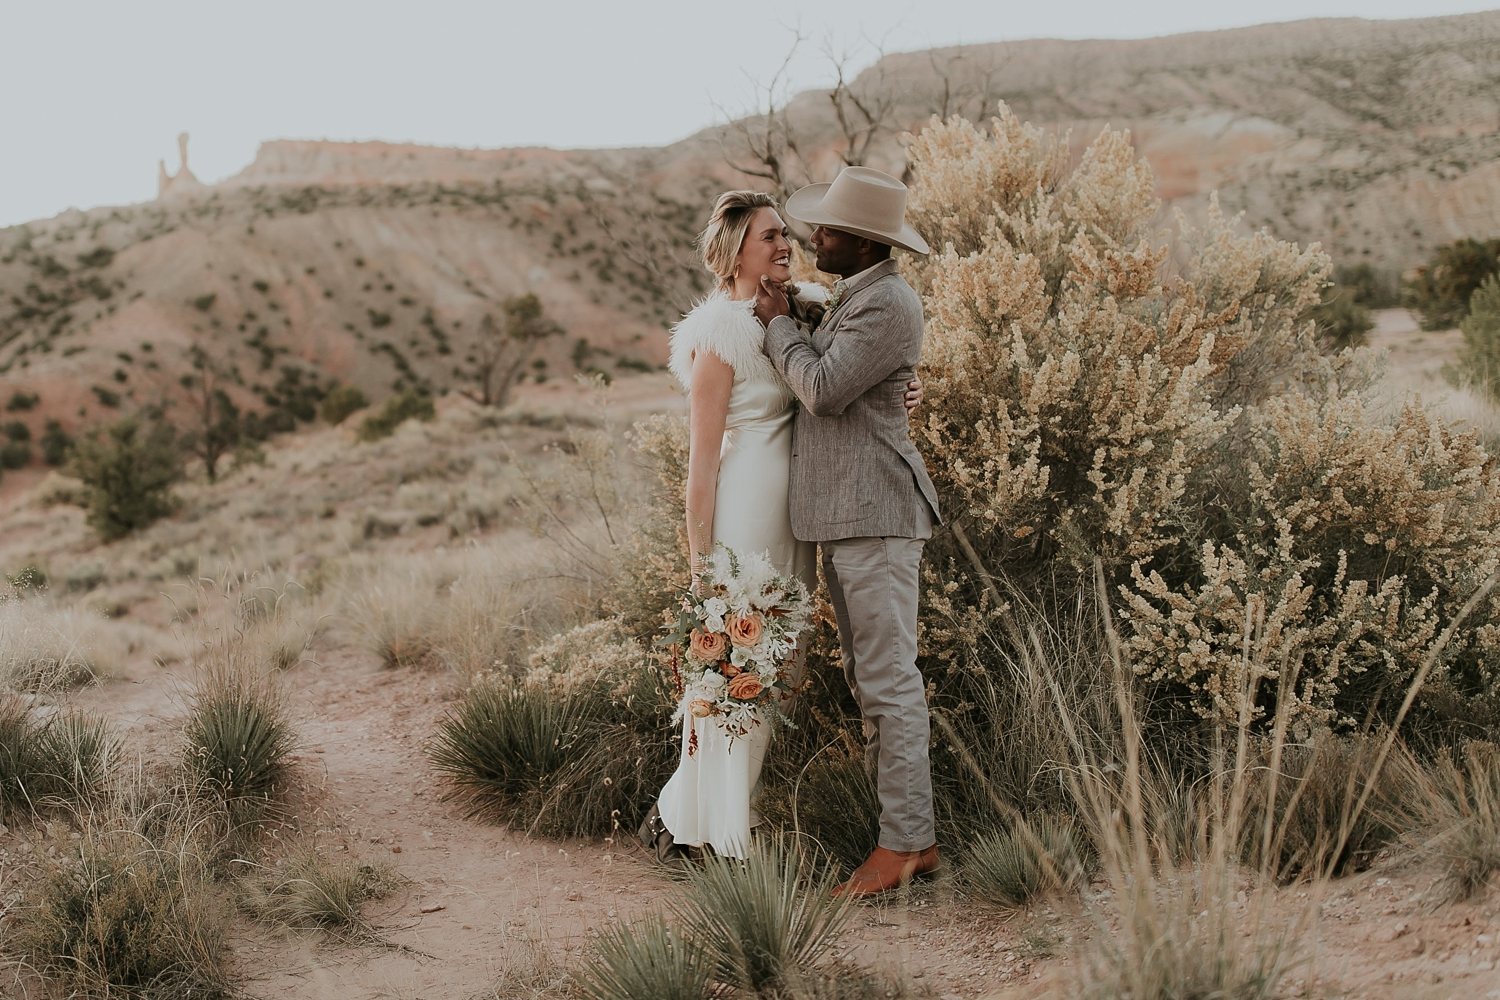 Alicia+lucia+photography+-+albuquerque+wedding+photographer+-+santa+fe+wedding+photography+-+new+mexico+wedding+photographer+-+new+mexico+ghost+ranch+wedding+-+styled+wedding+shoot_0075.jpg